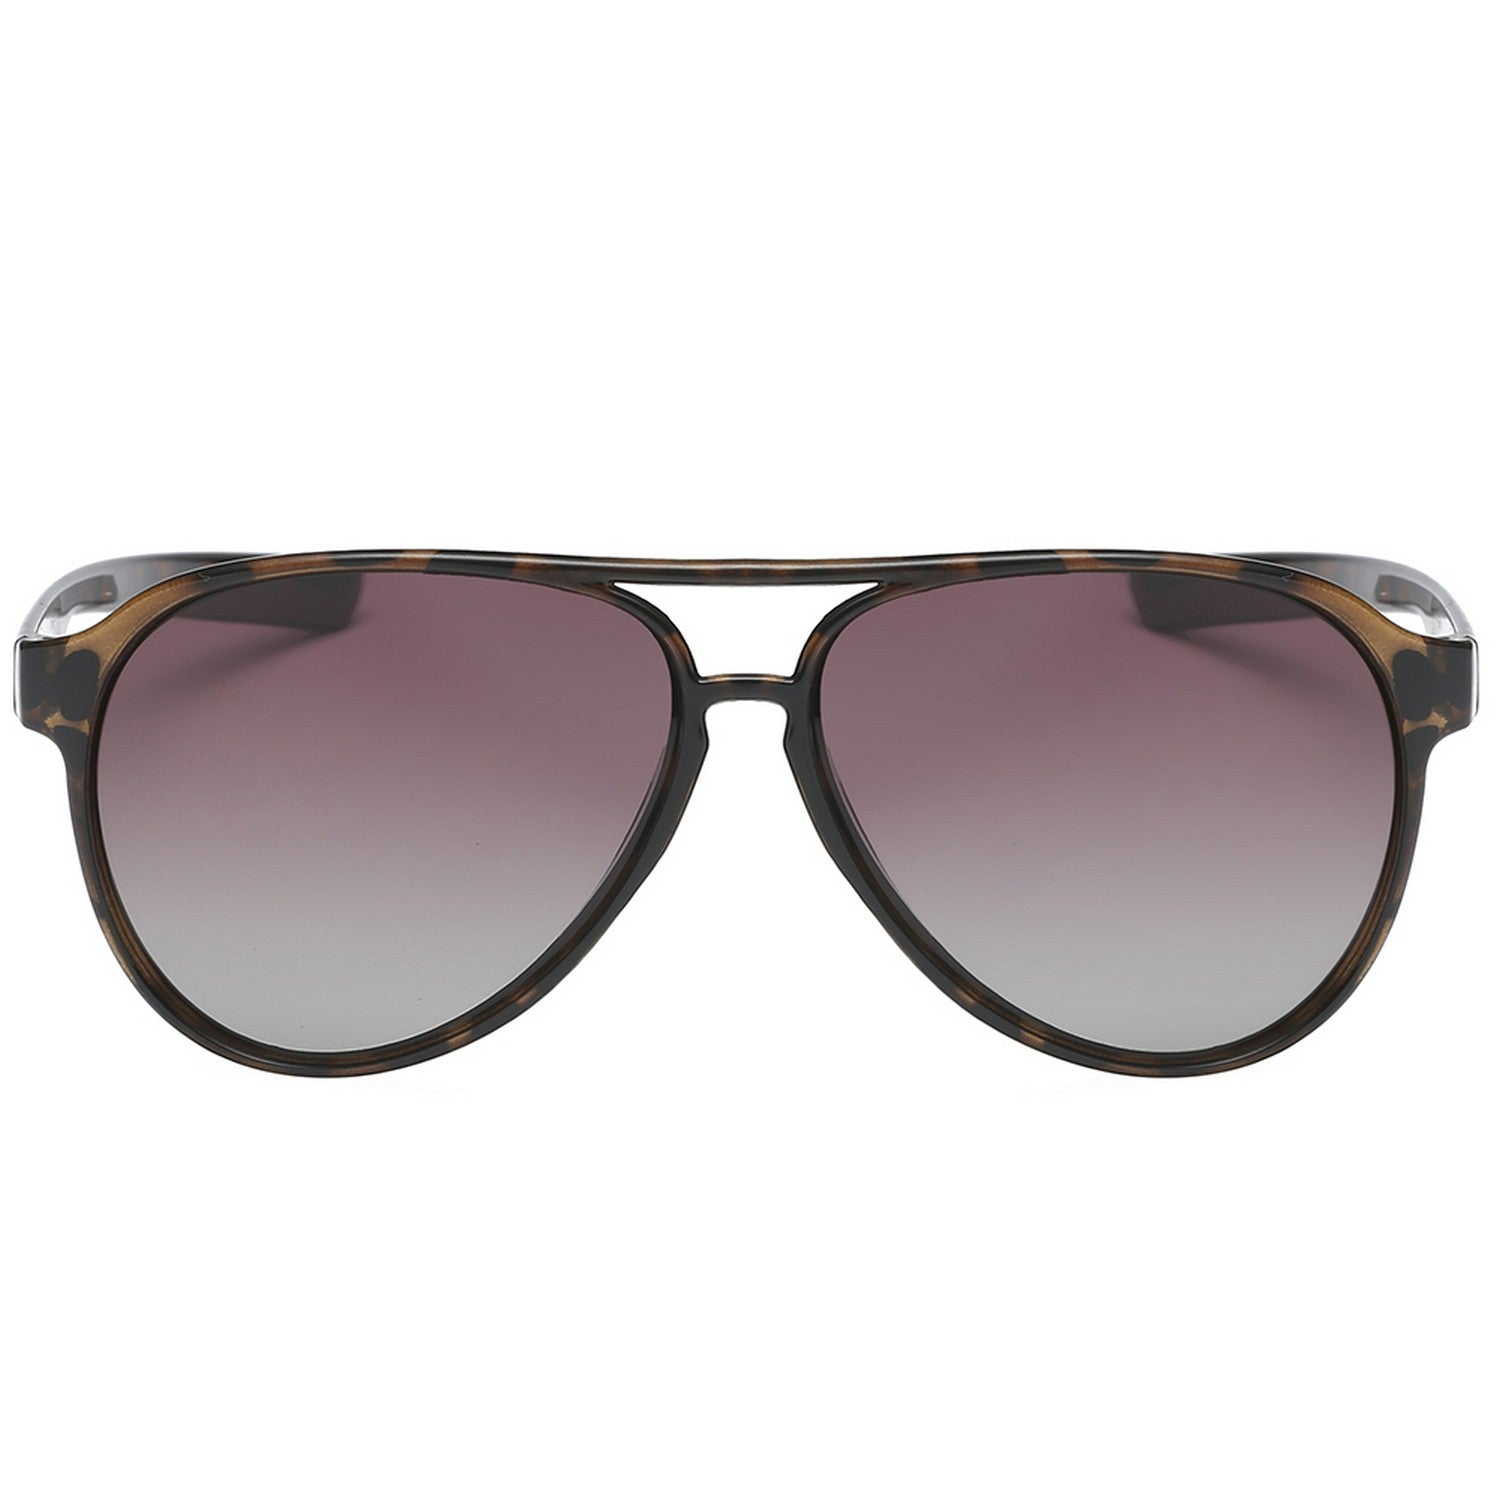 Polarspex Polarized Classic Ultar Lightweight Aviator Pilot Sunglasses with Honey Tortoise Frames and Polarized Gradient Brown Lenses for Men and Women